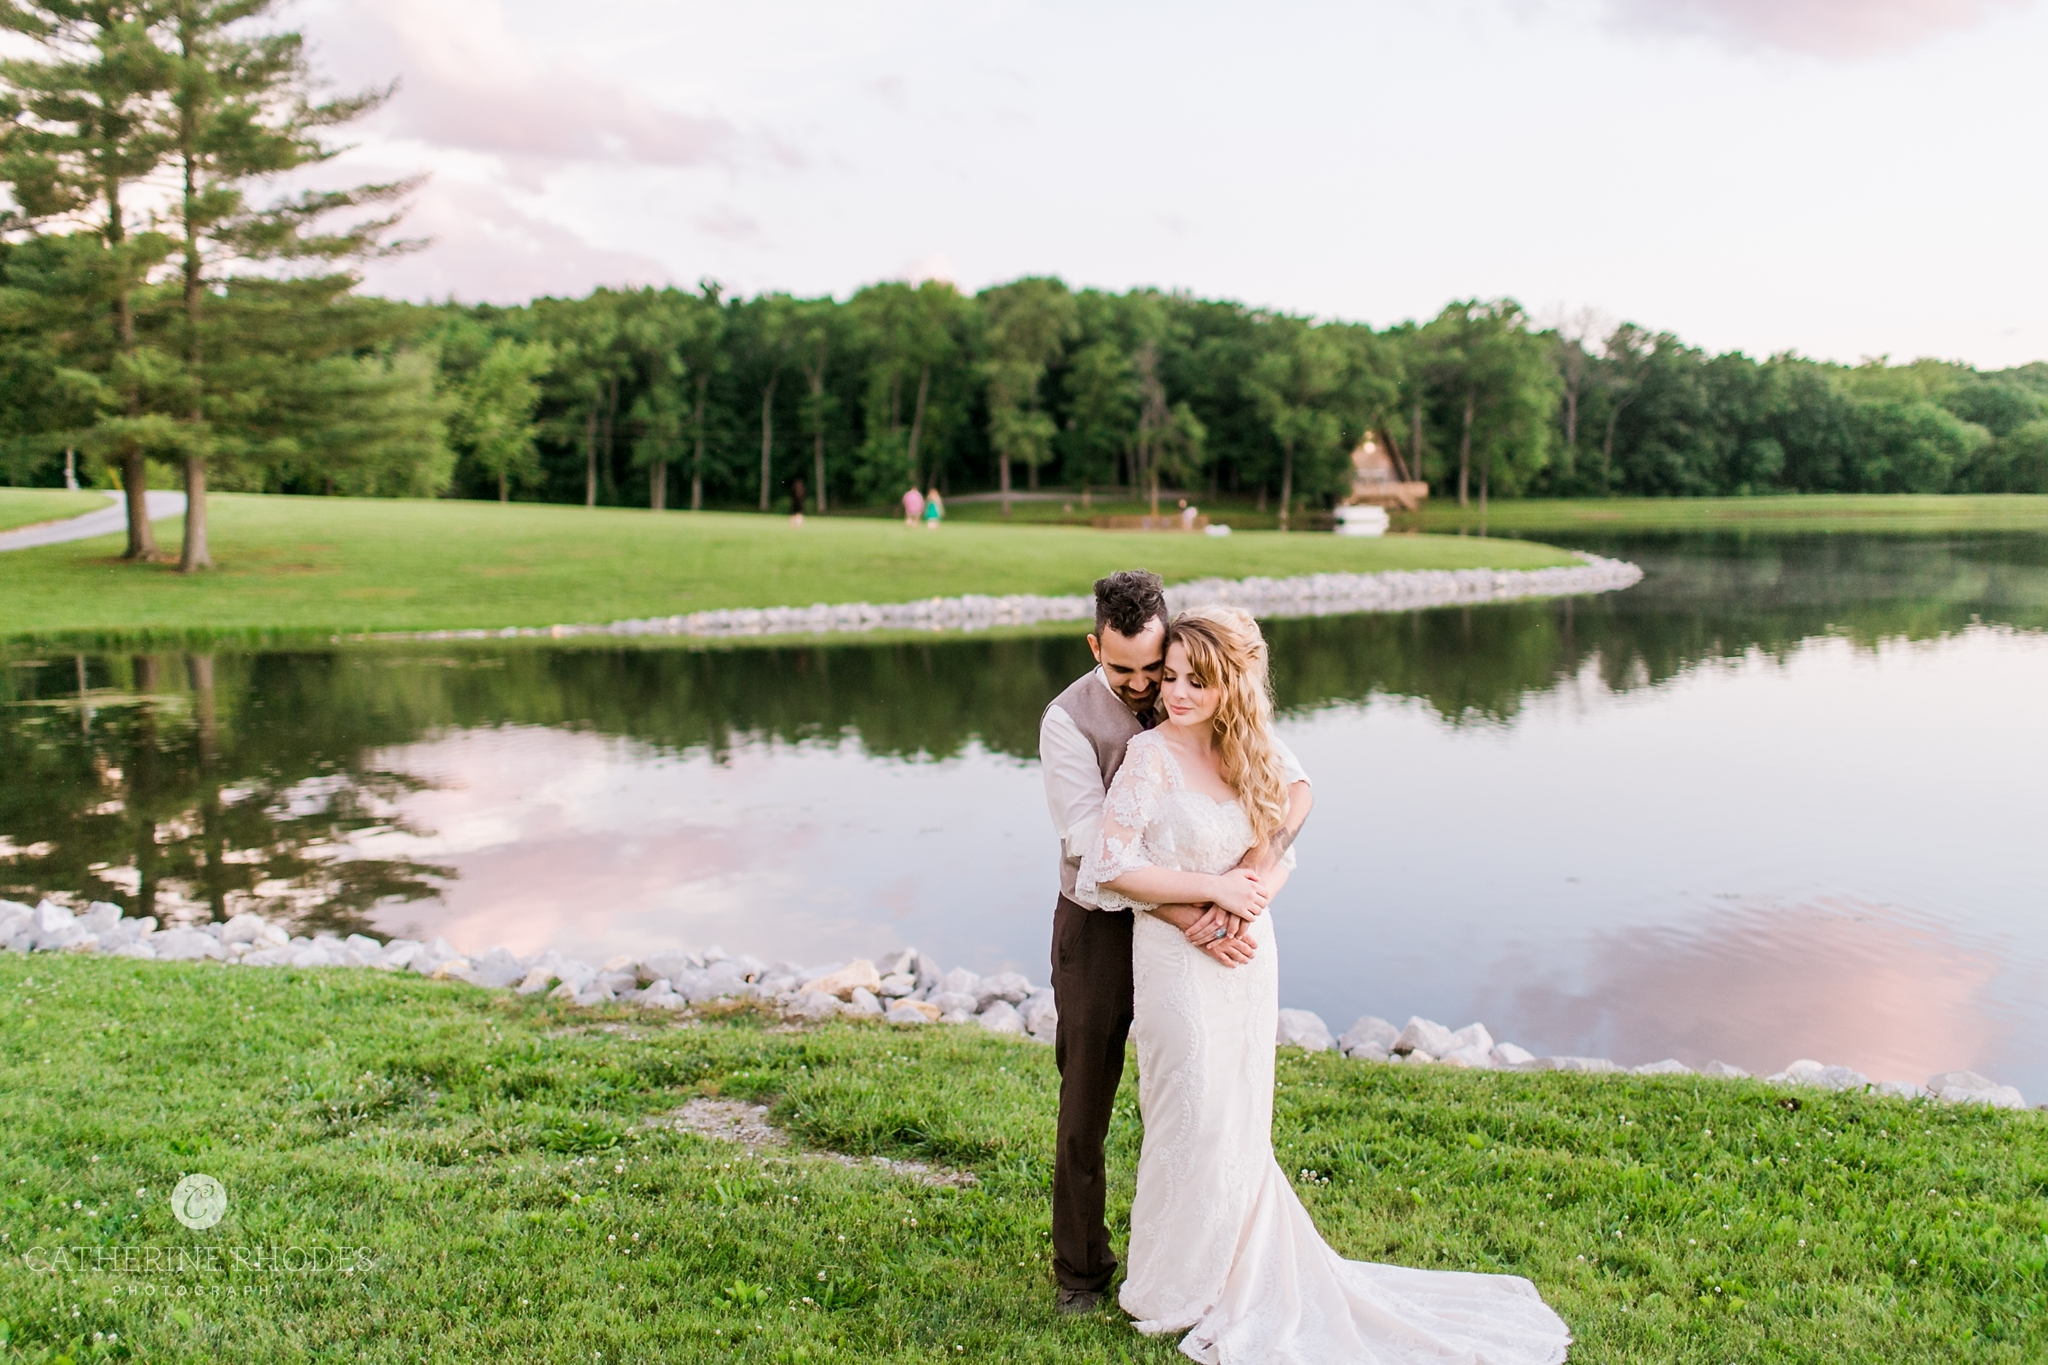 ColumbiaMissouriCedarCreekWedding_MissouriWeddingPhotographer_MonicaJosh_CatherineRhodesPhotography-891-Edit-1.jpg